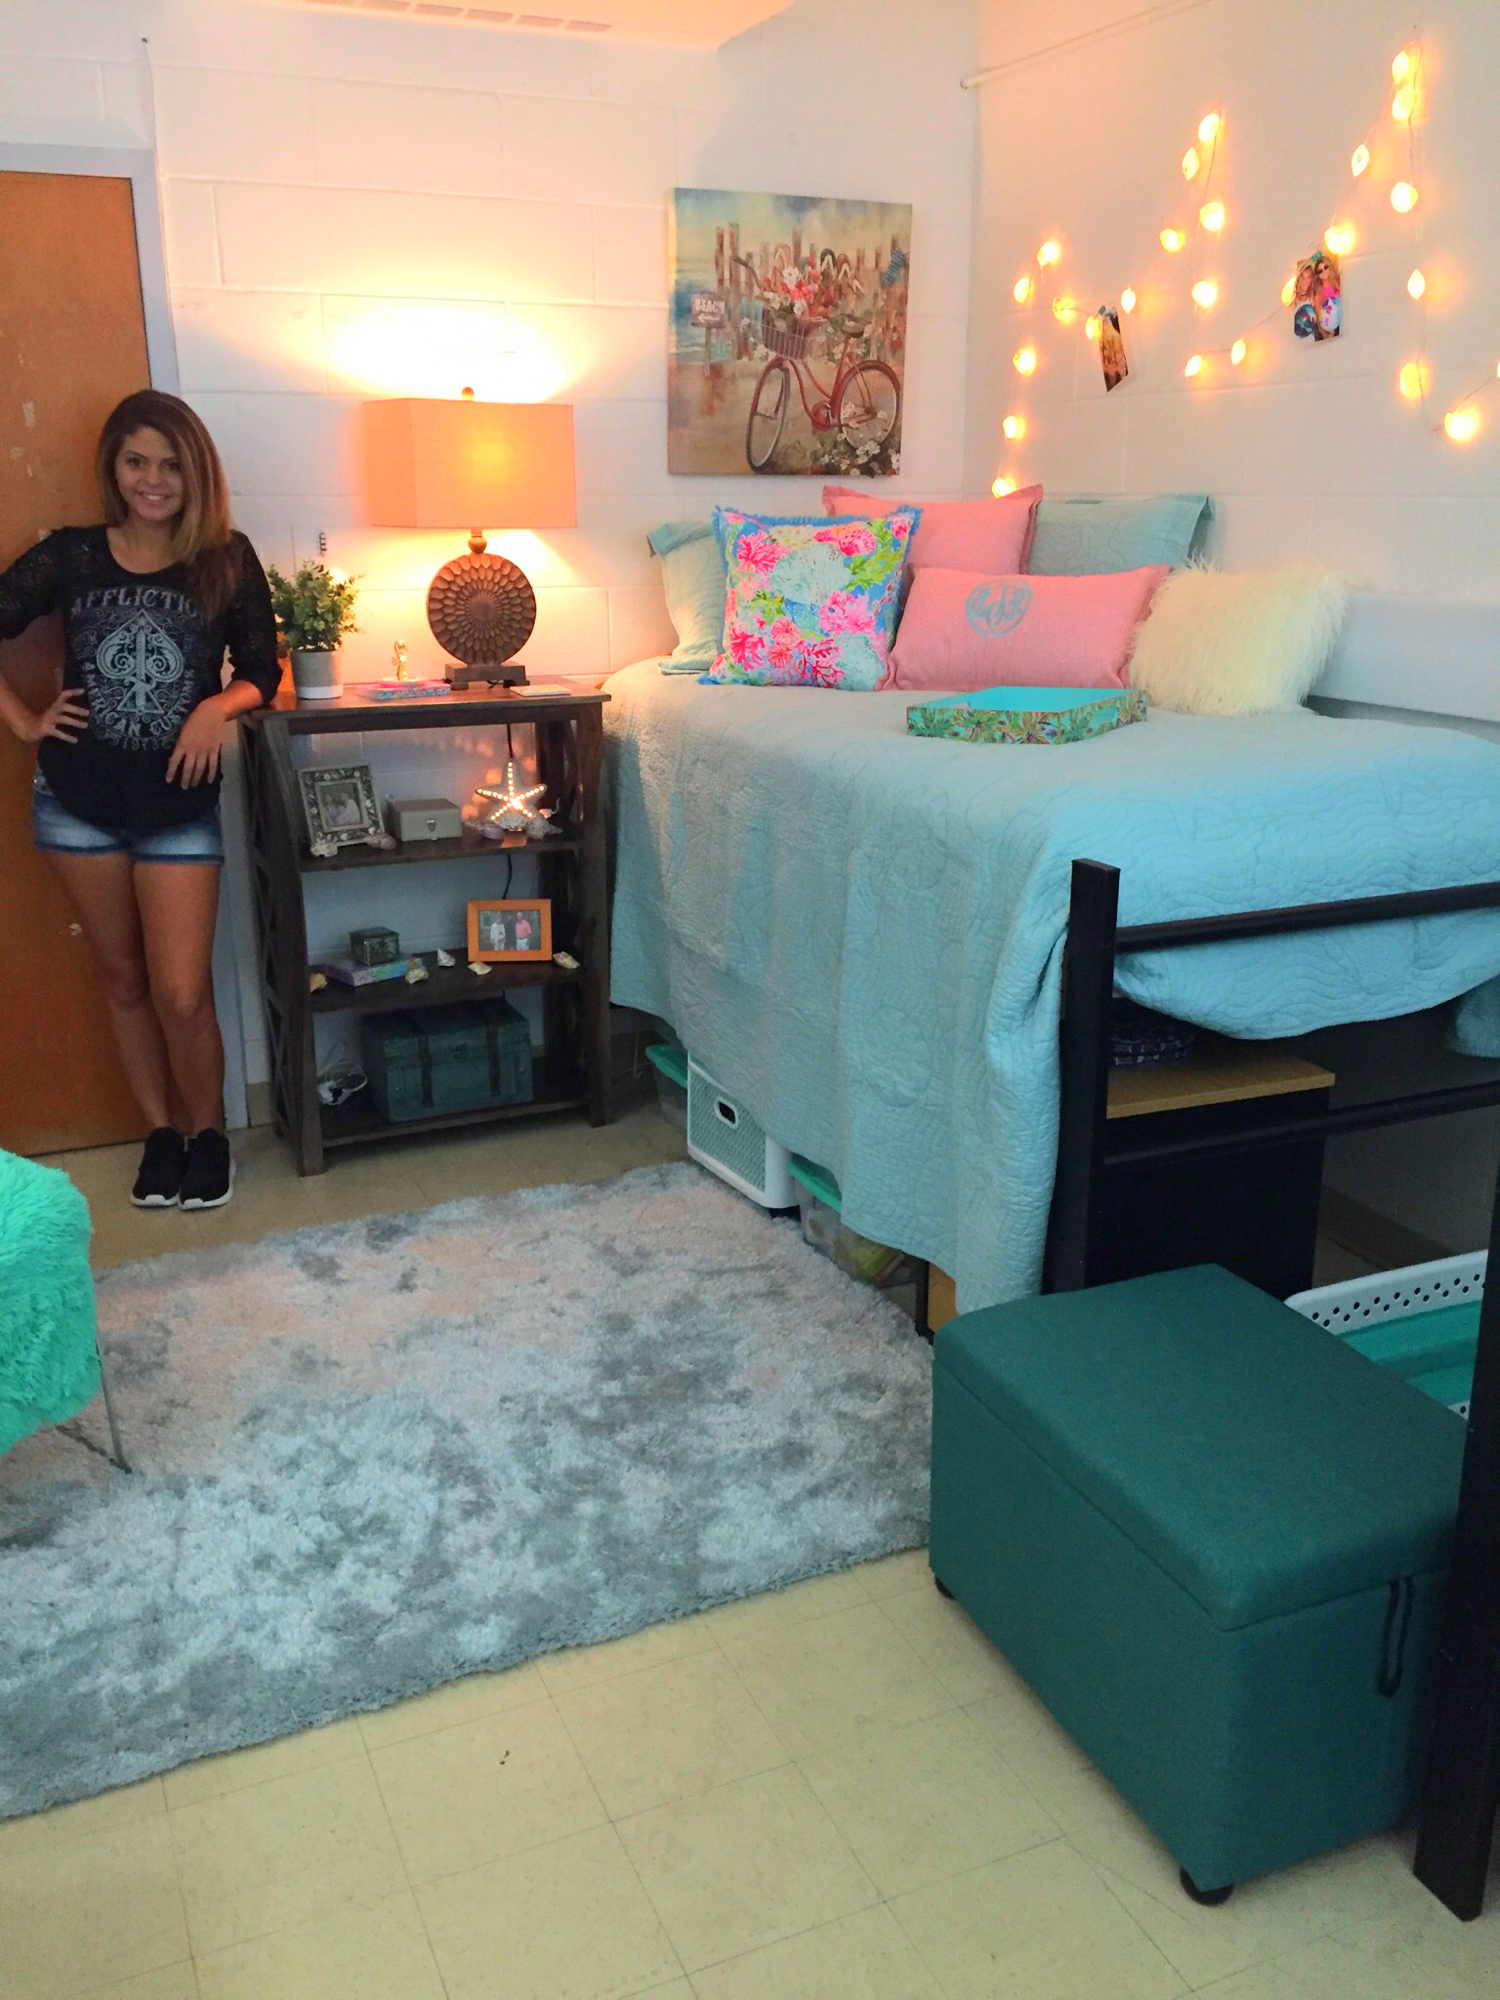 Dorm Room Ideas For Girls Organization Budget